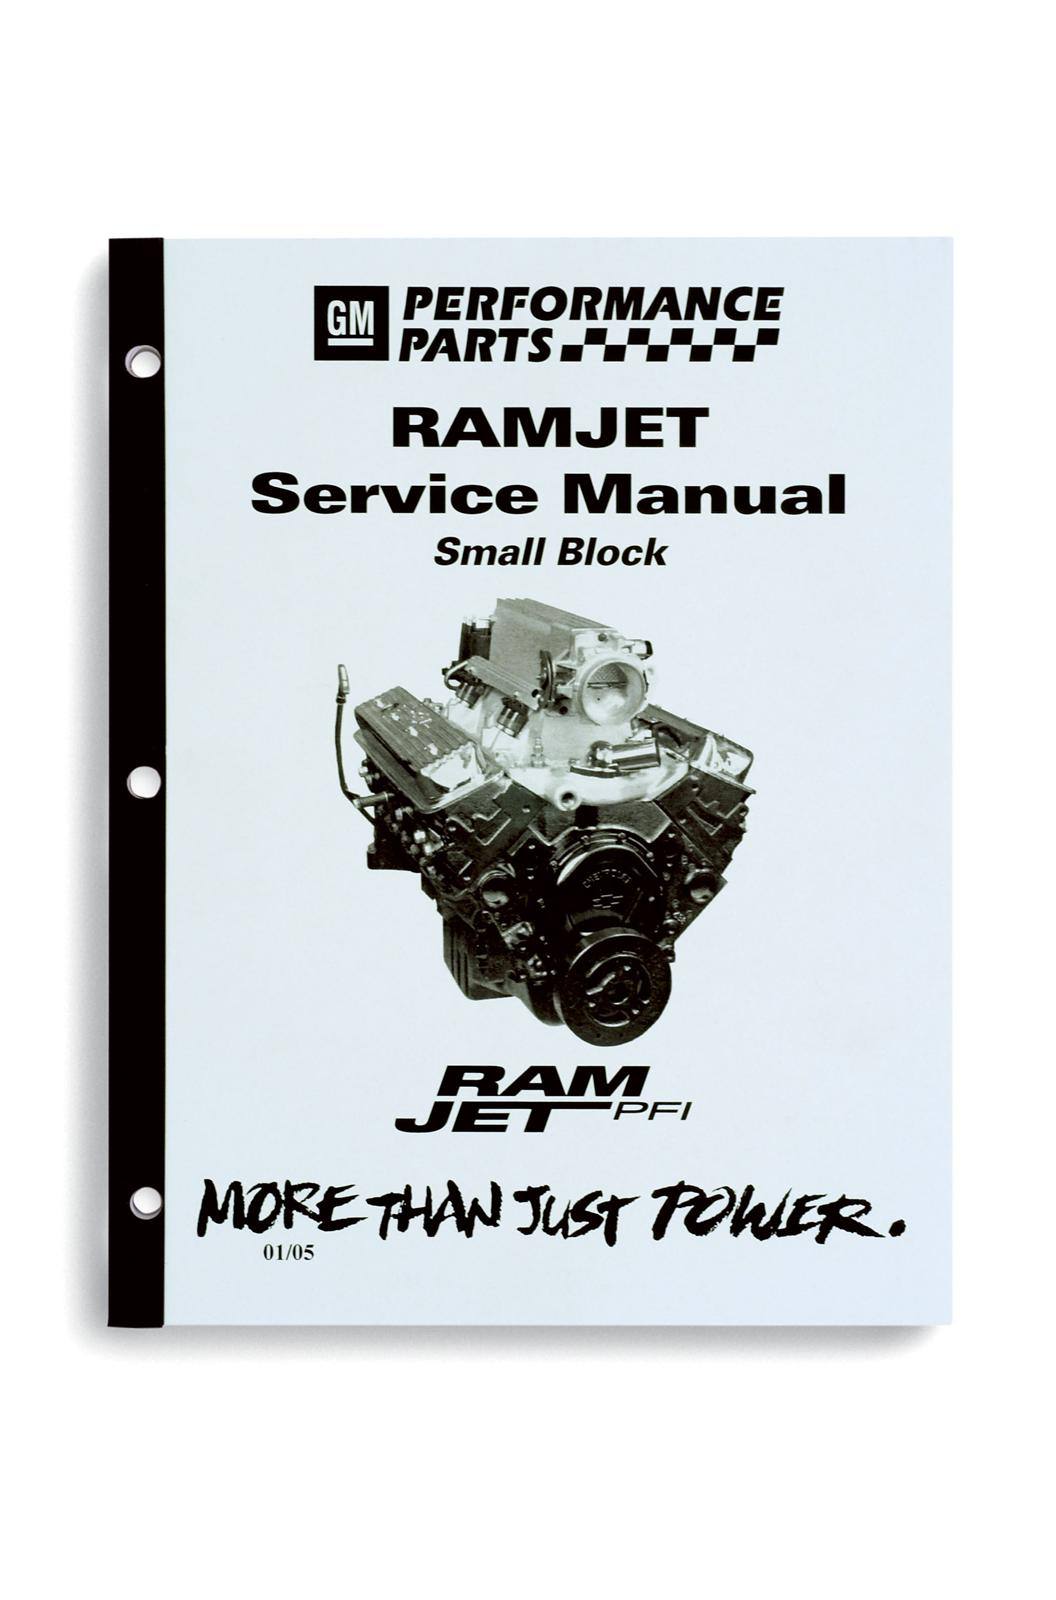 Chevrolet Performance Ram Jet 350 Engine Service Manuals 88962723 - Free  Shipping on Orders Over $99 at Summit Racing